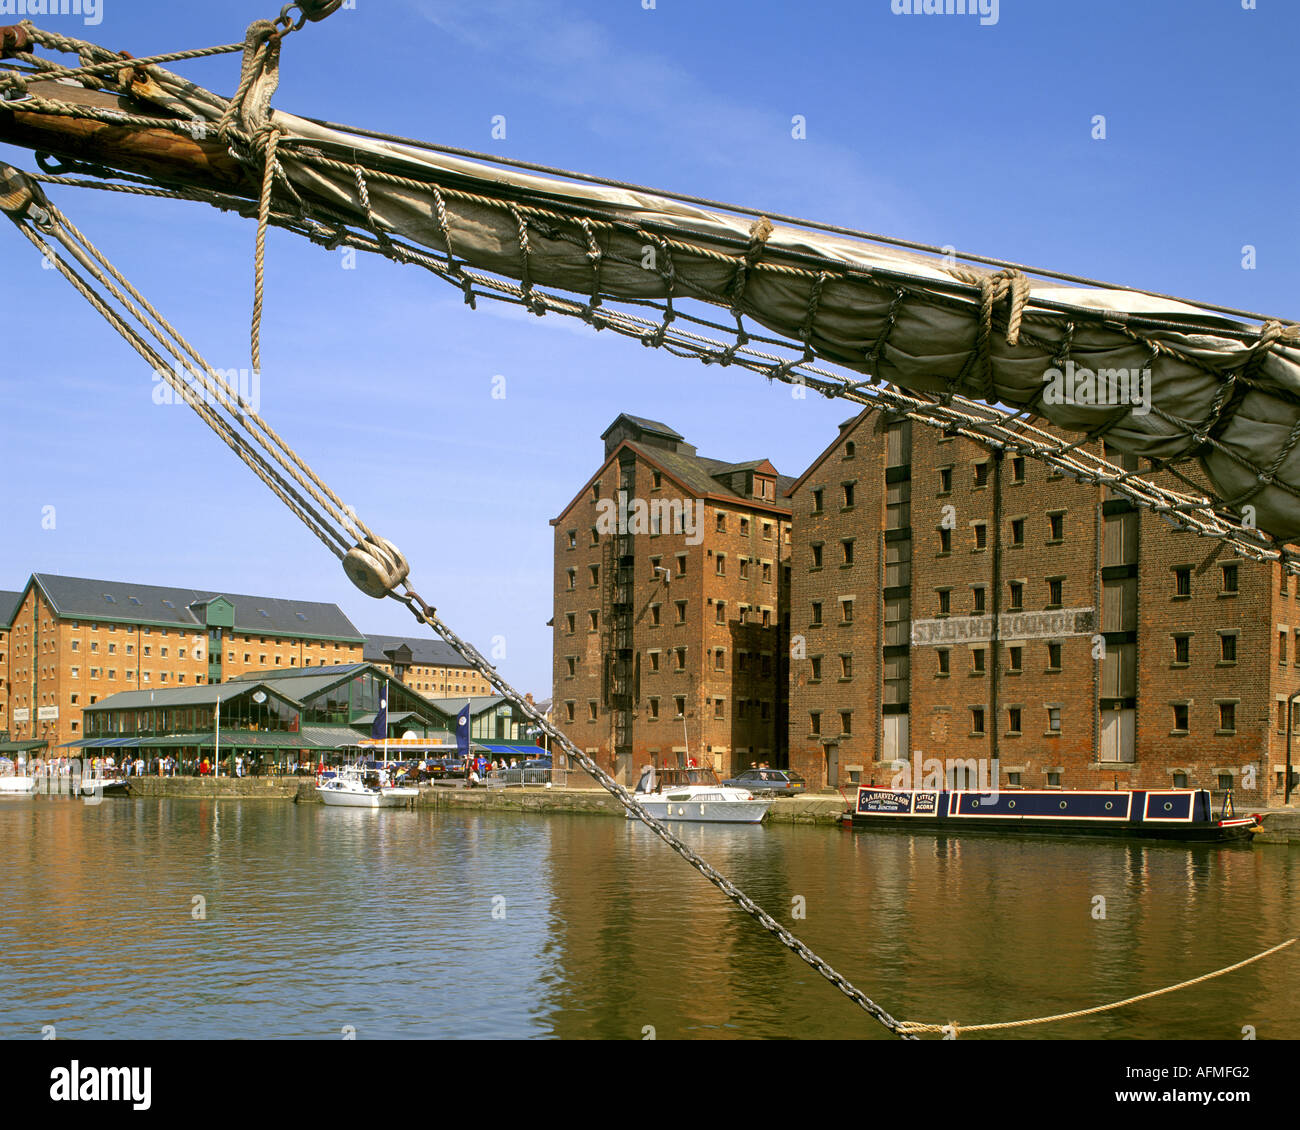 Go - GLOUCESTERSHIRE : Gloucester Docks historiques Photo Stock